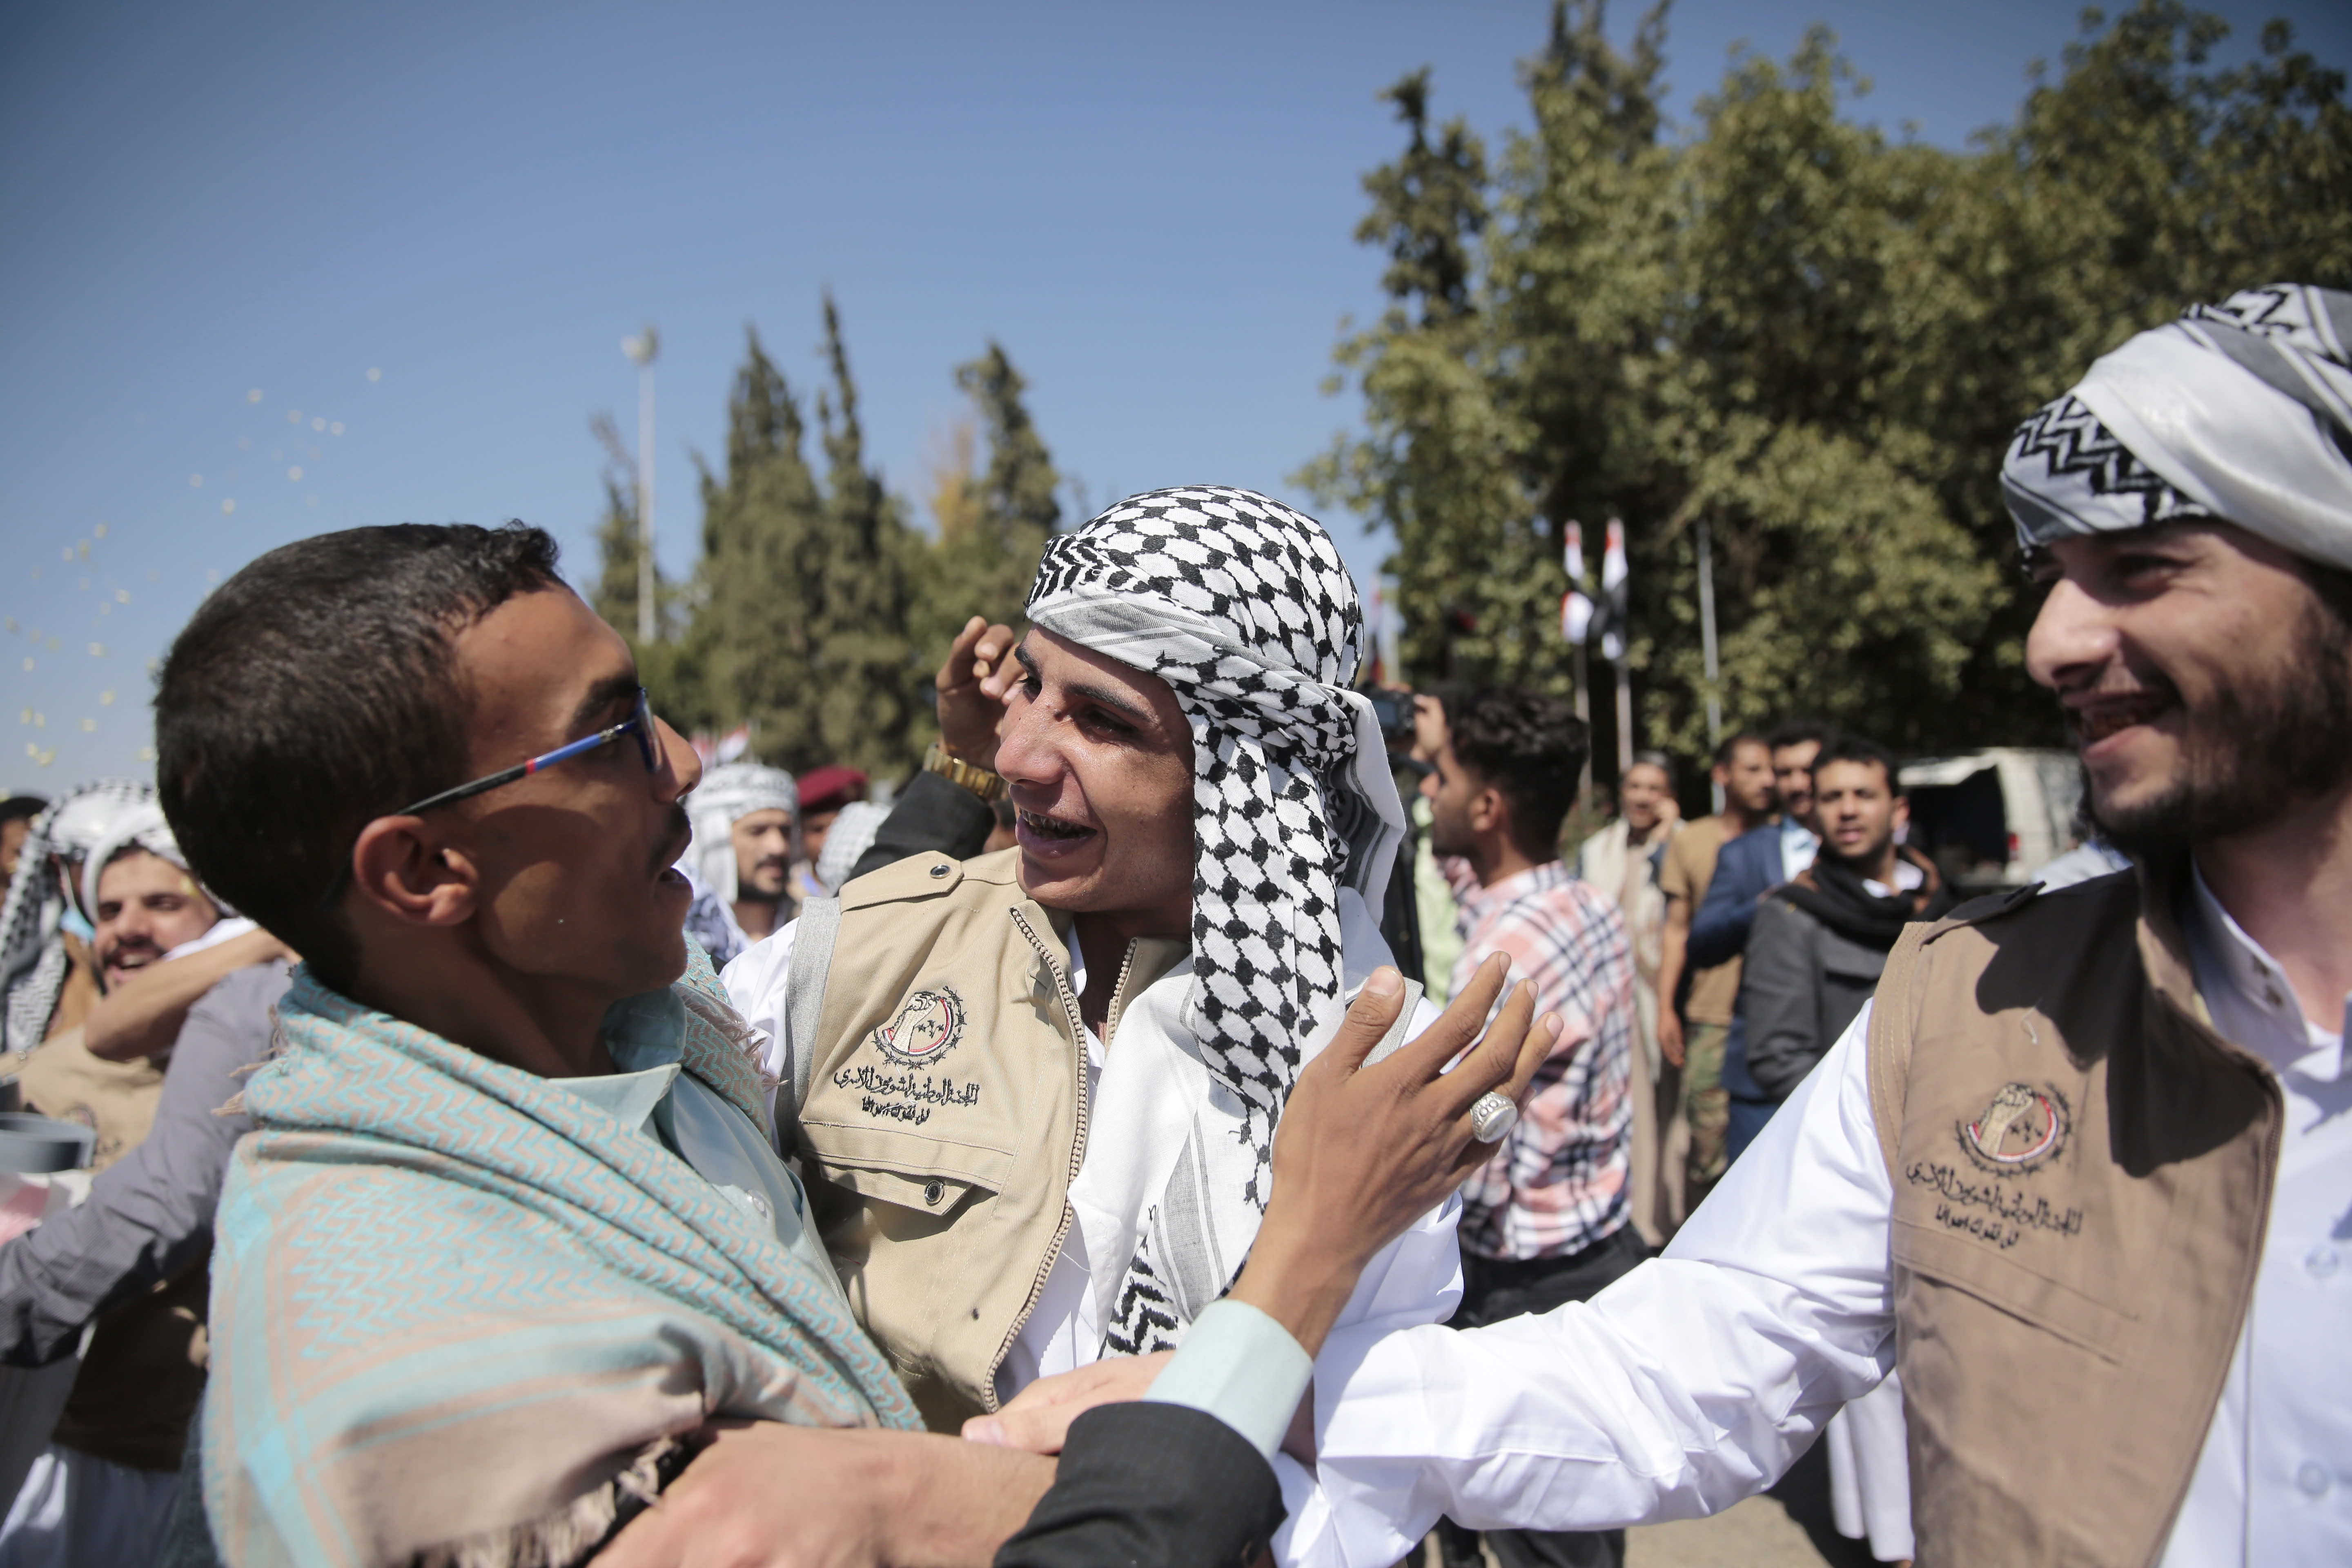 Yemeni prisoner are greeted by his relative after being released by the Saudi-led coalition, at the airport in Sanaa, Yemen, Thursday, Oct. 15, 2020. (AP Photo/Hani Mohammed)